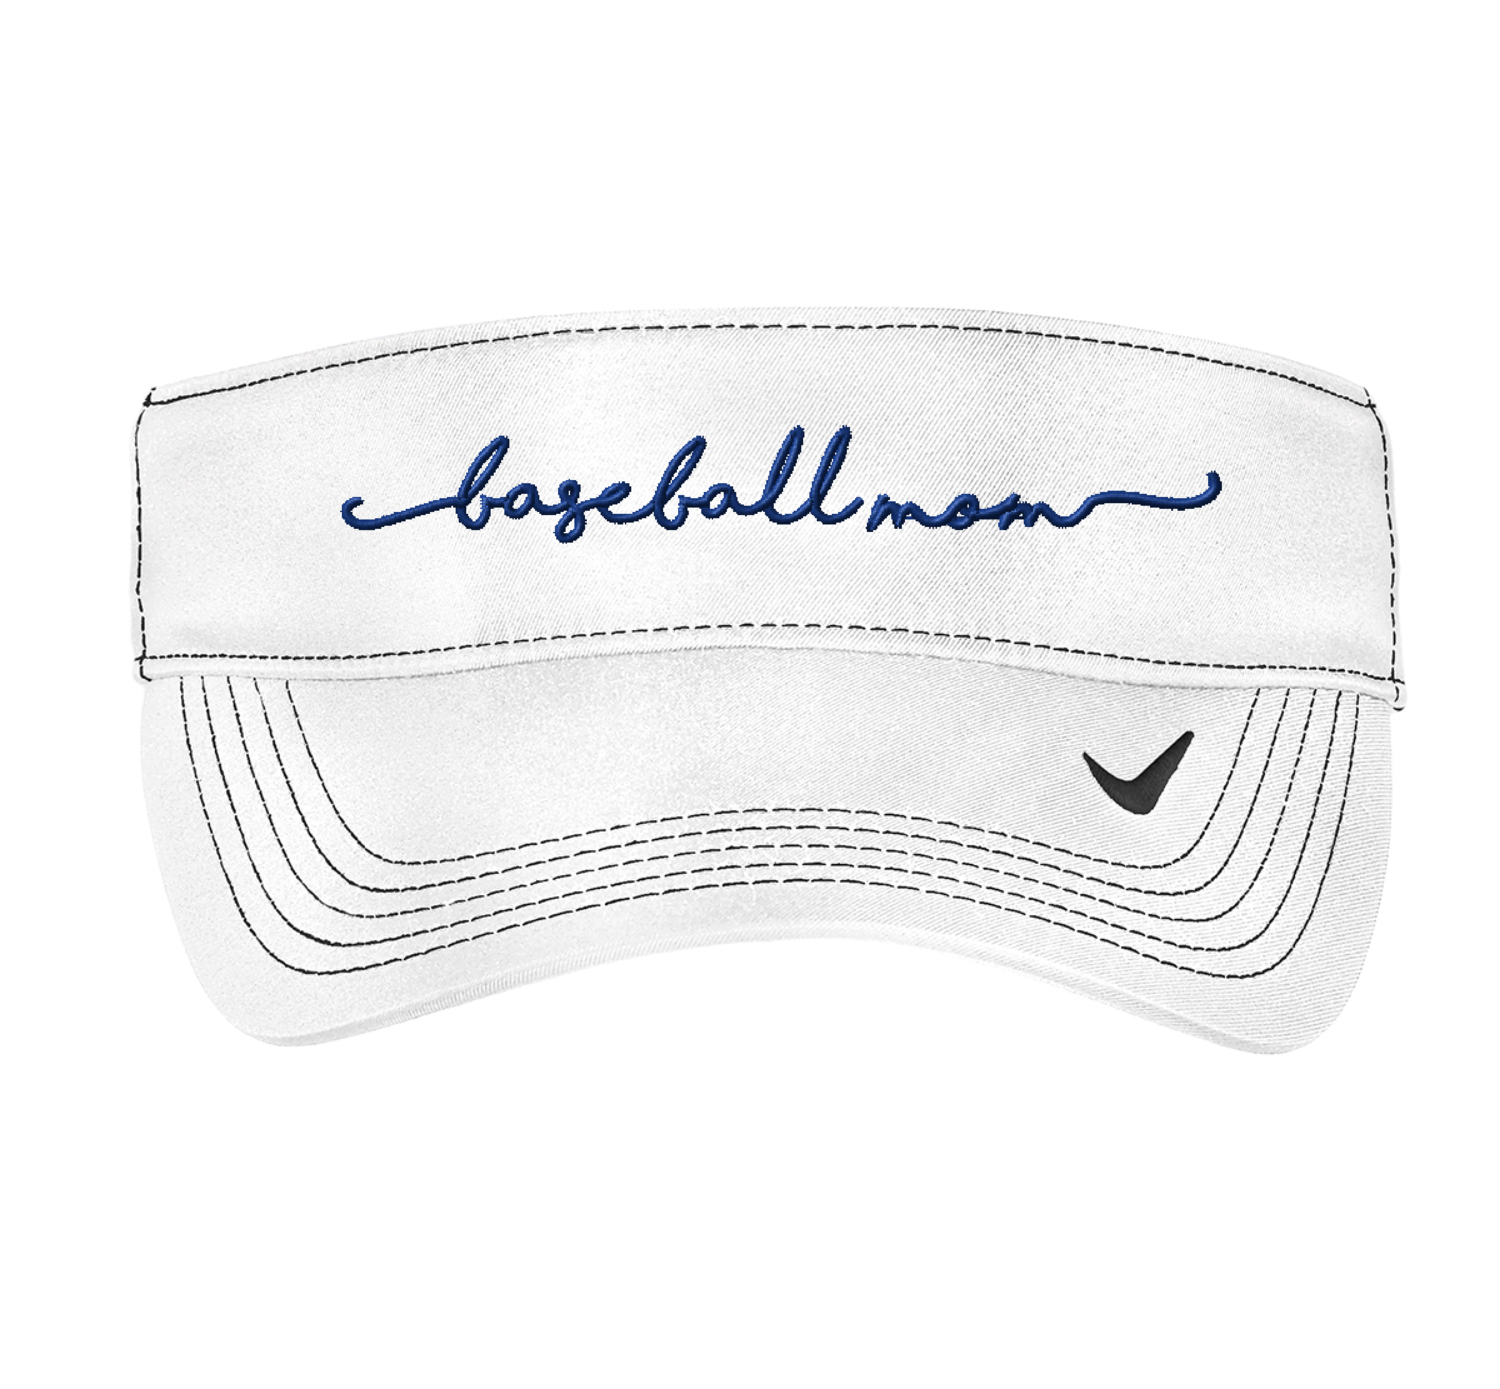 Embroidered Baseball Mom Visor - Nike Dri-FIT Swoosh Visor